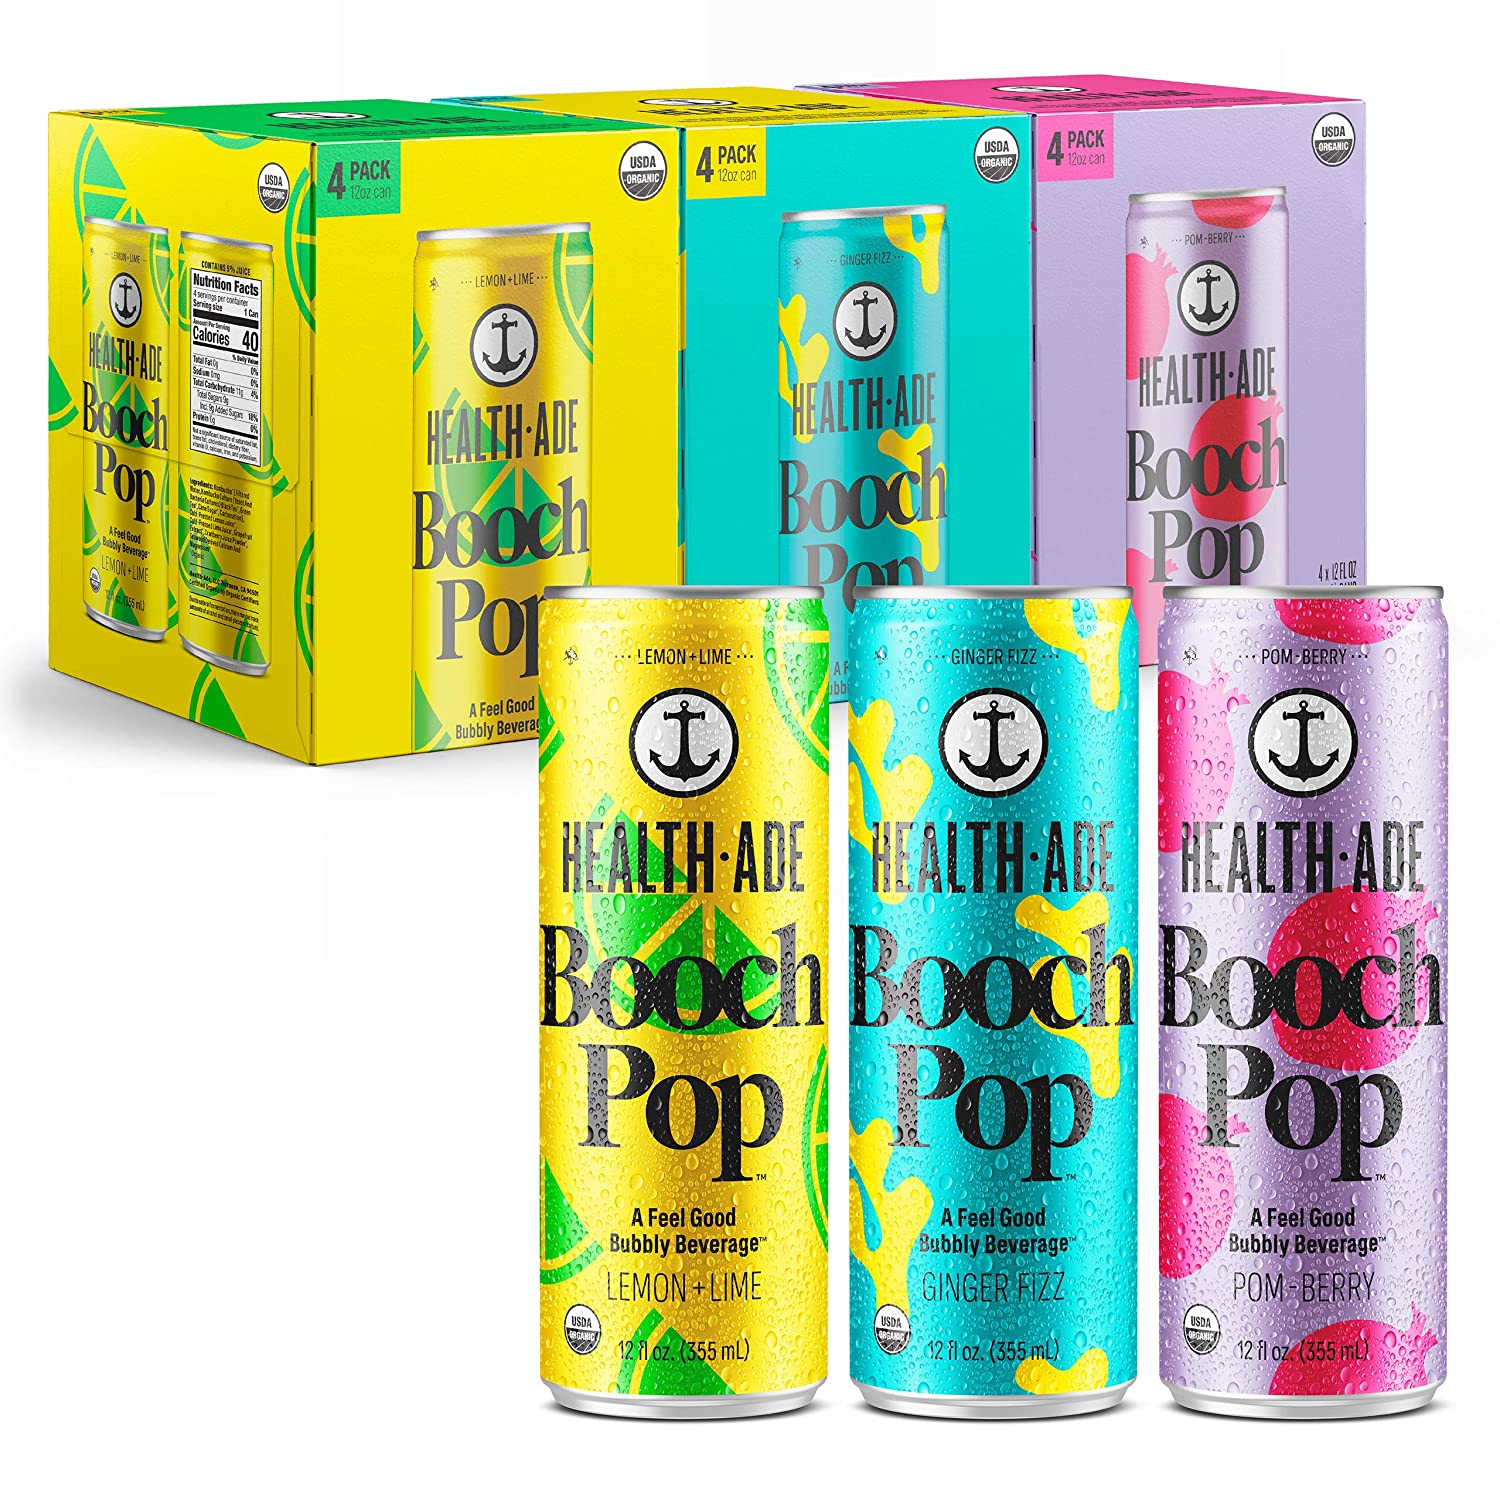 Health-Ade Booch Pop Healthy Soda for Gut Health, Made with Kombucha, Calcium, and Magnesium, 12 Pack Case (12 Fl Oz Cans), Variety Pack